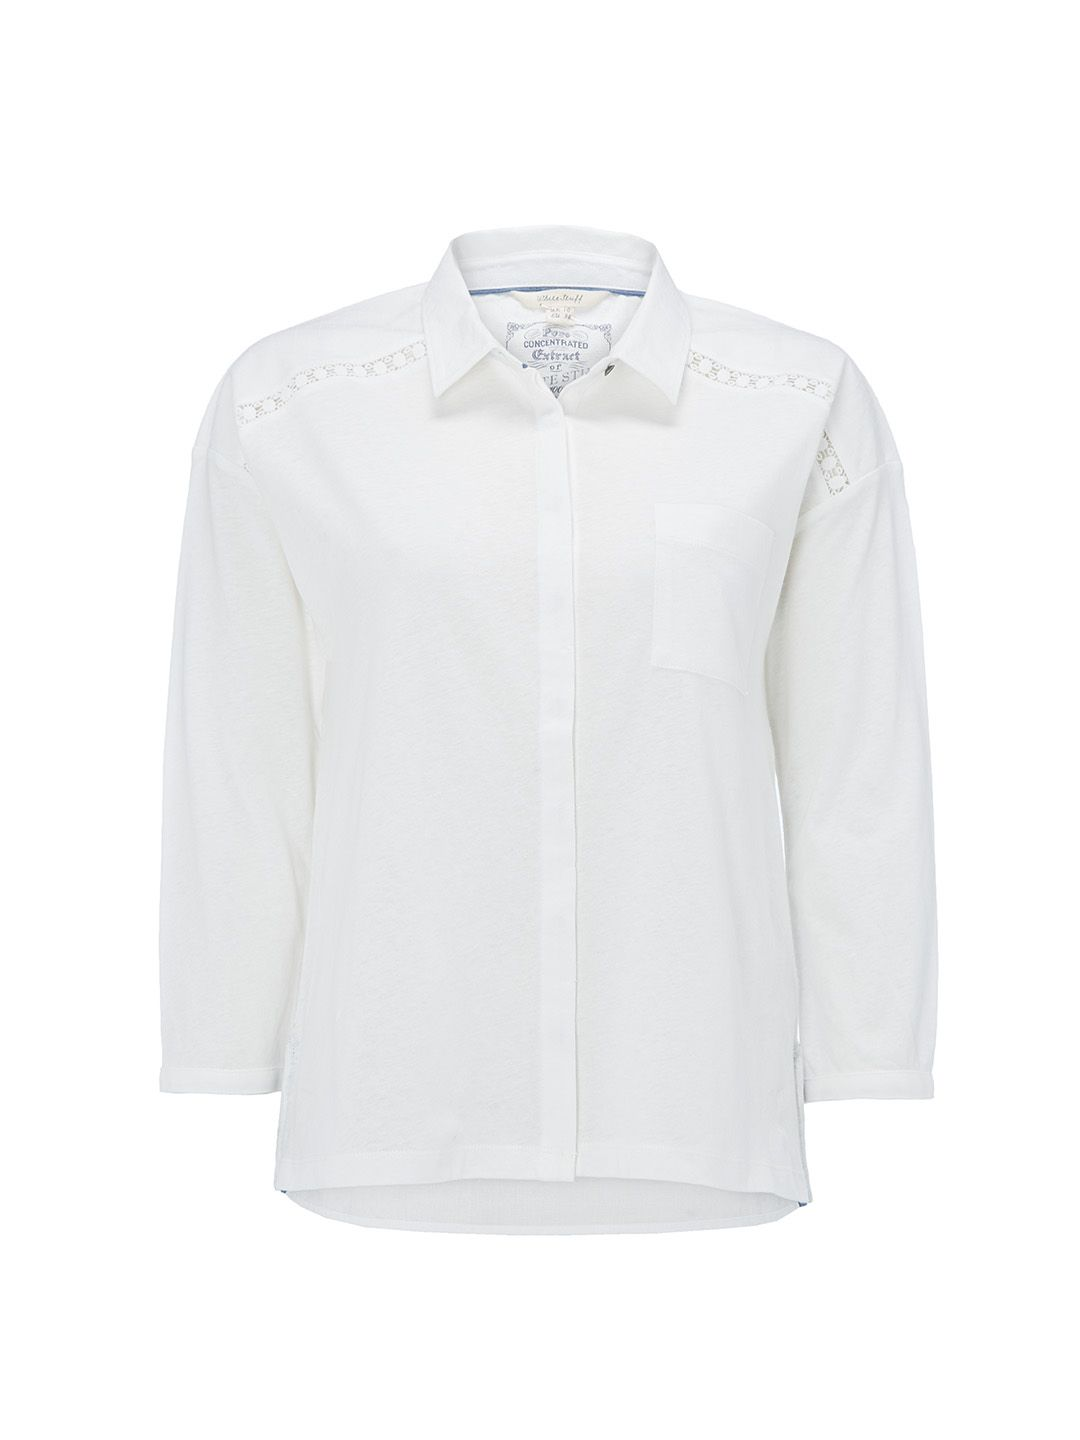 White Stuff Yannie Yoke Jersey Shirt, White